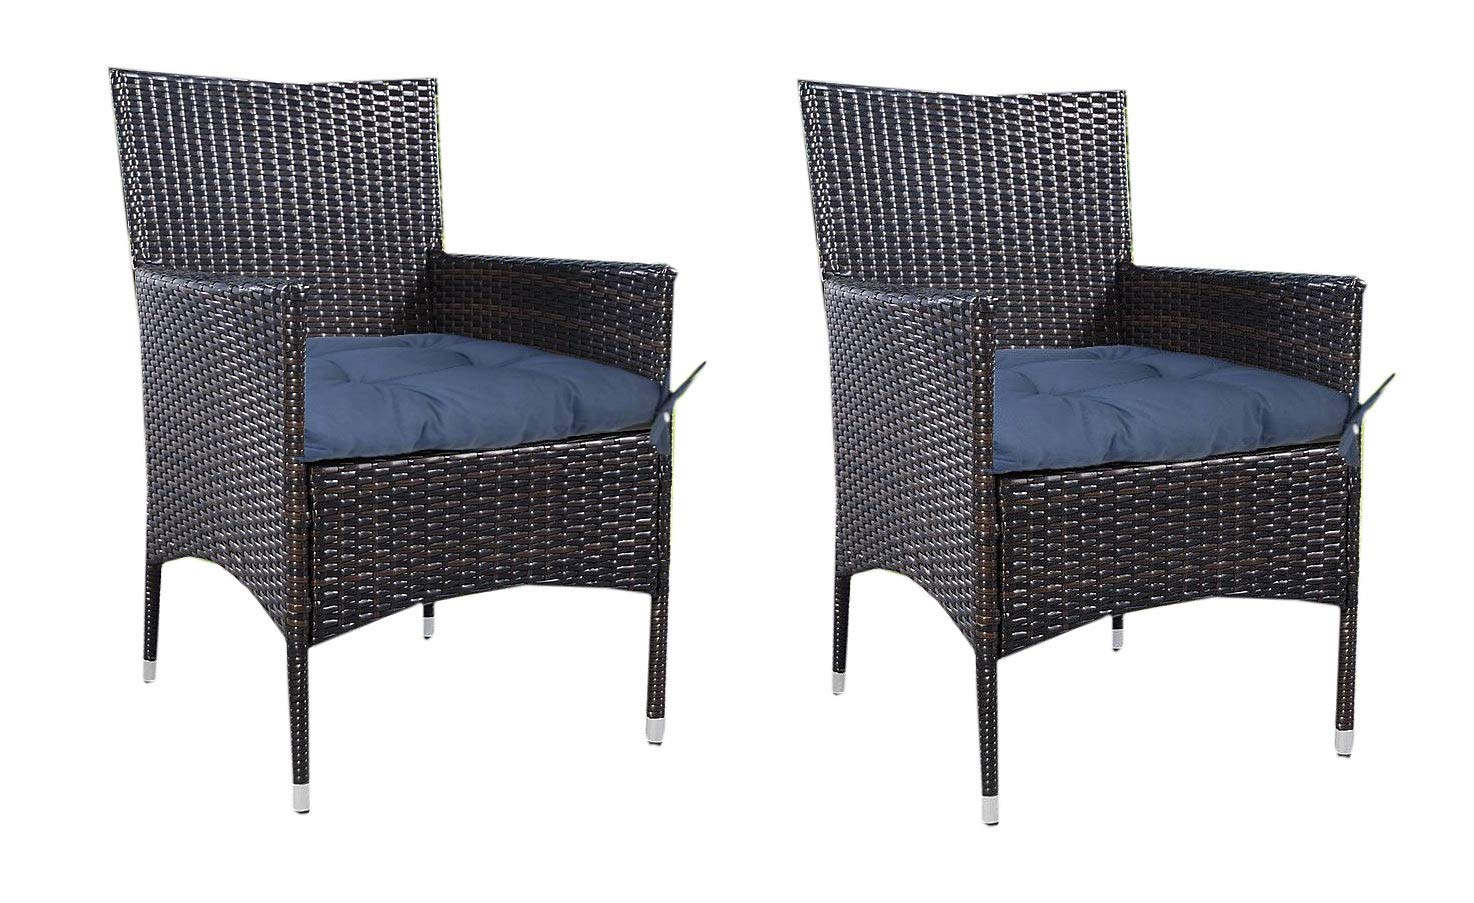 Prettyshop4246 Indoor Ourdoor Wicker Warm Cushion Seat Pad Poolside Home Garden Patio Backyard Balcony Linen Fabric Made in USA Product Soap Maintain East Clean Set of 2 Pcs Navy Blue by Prettyshop4246 (Image #6)